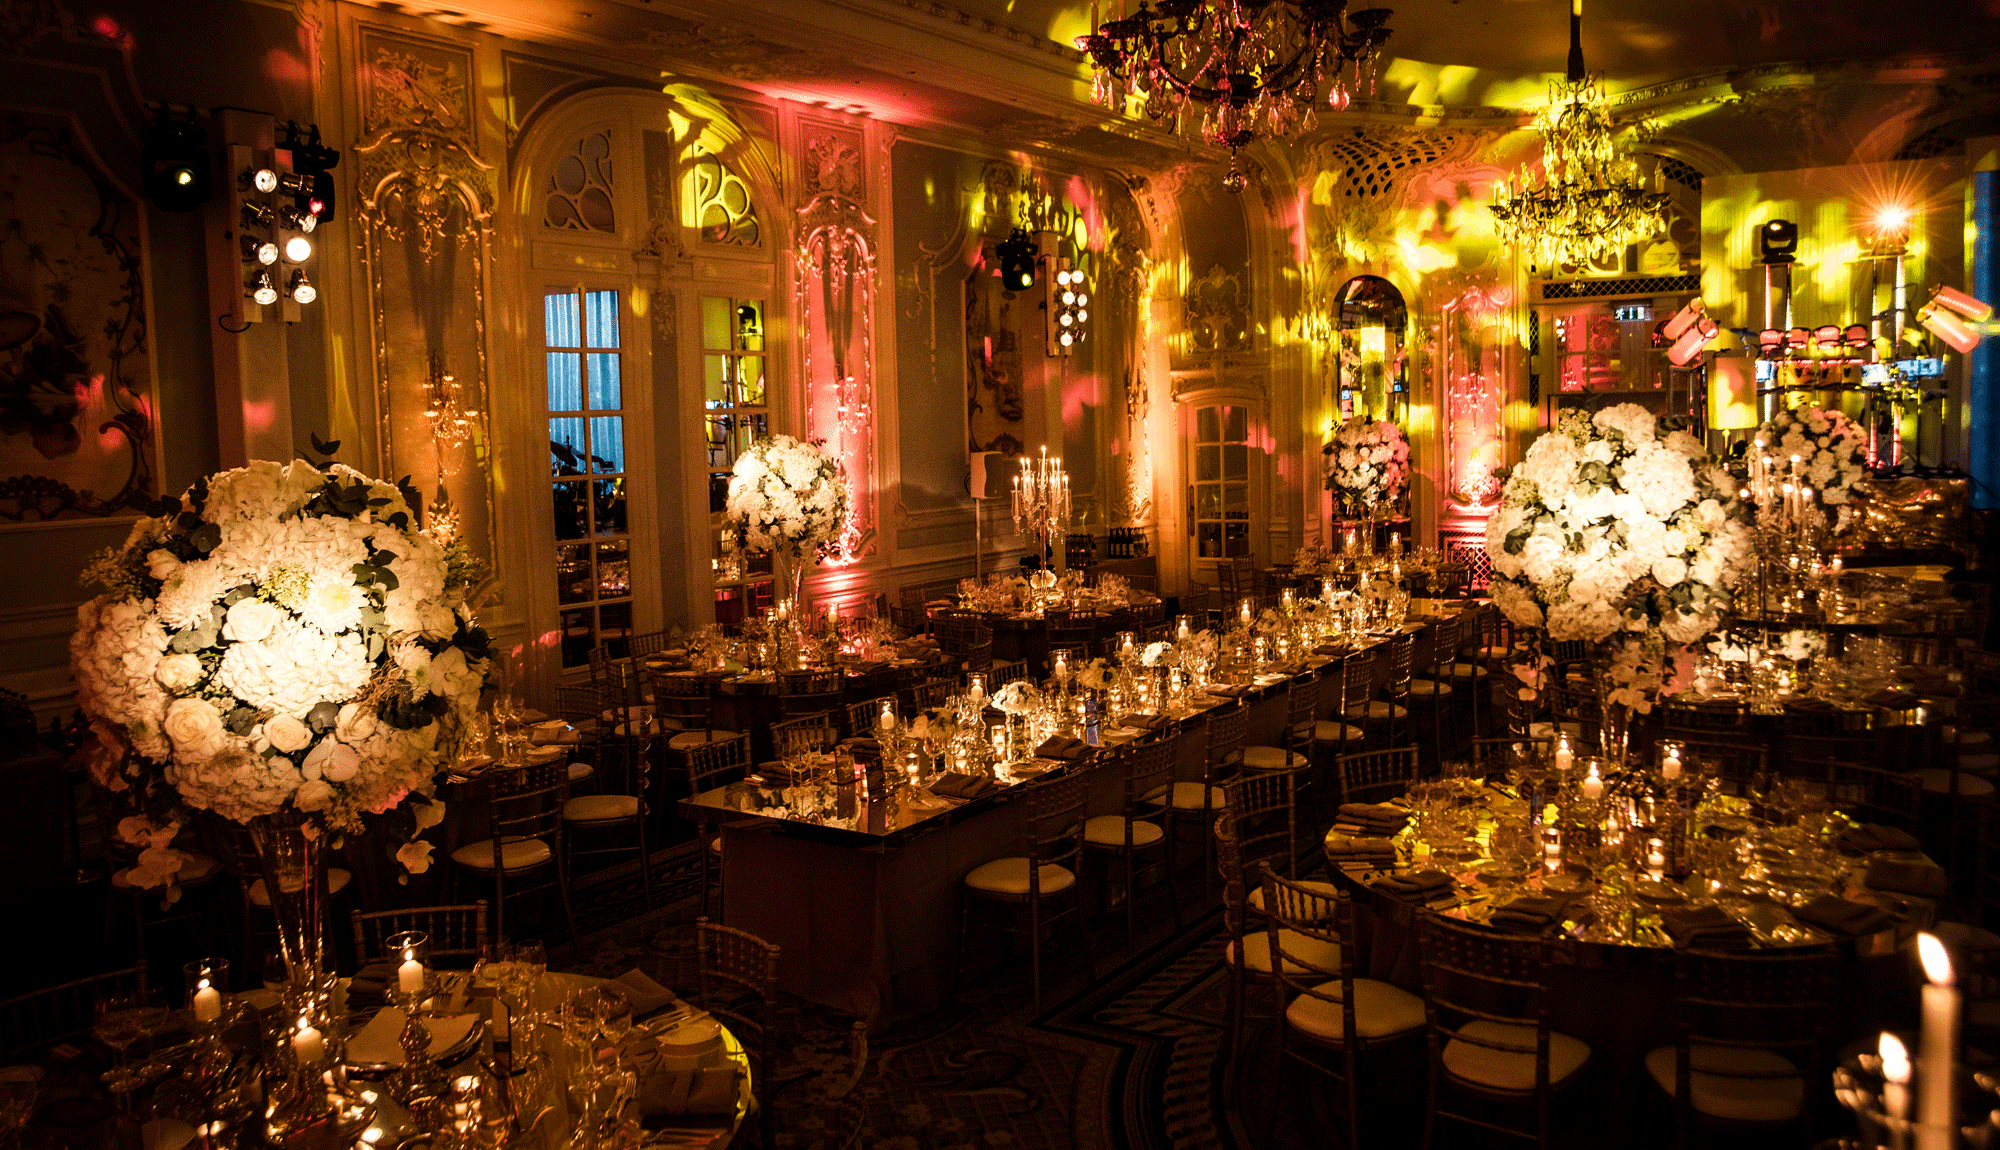 Candlelit Wedding at the Savoy Hotel